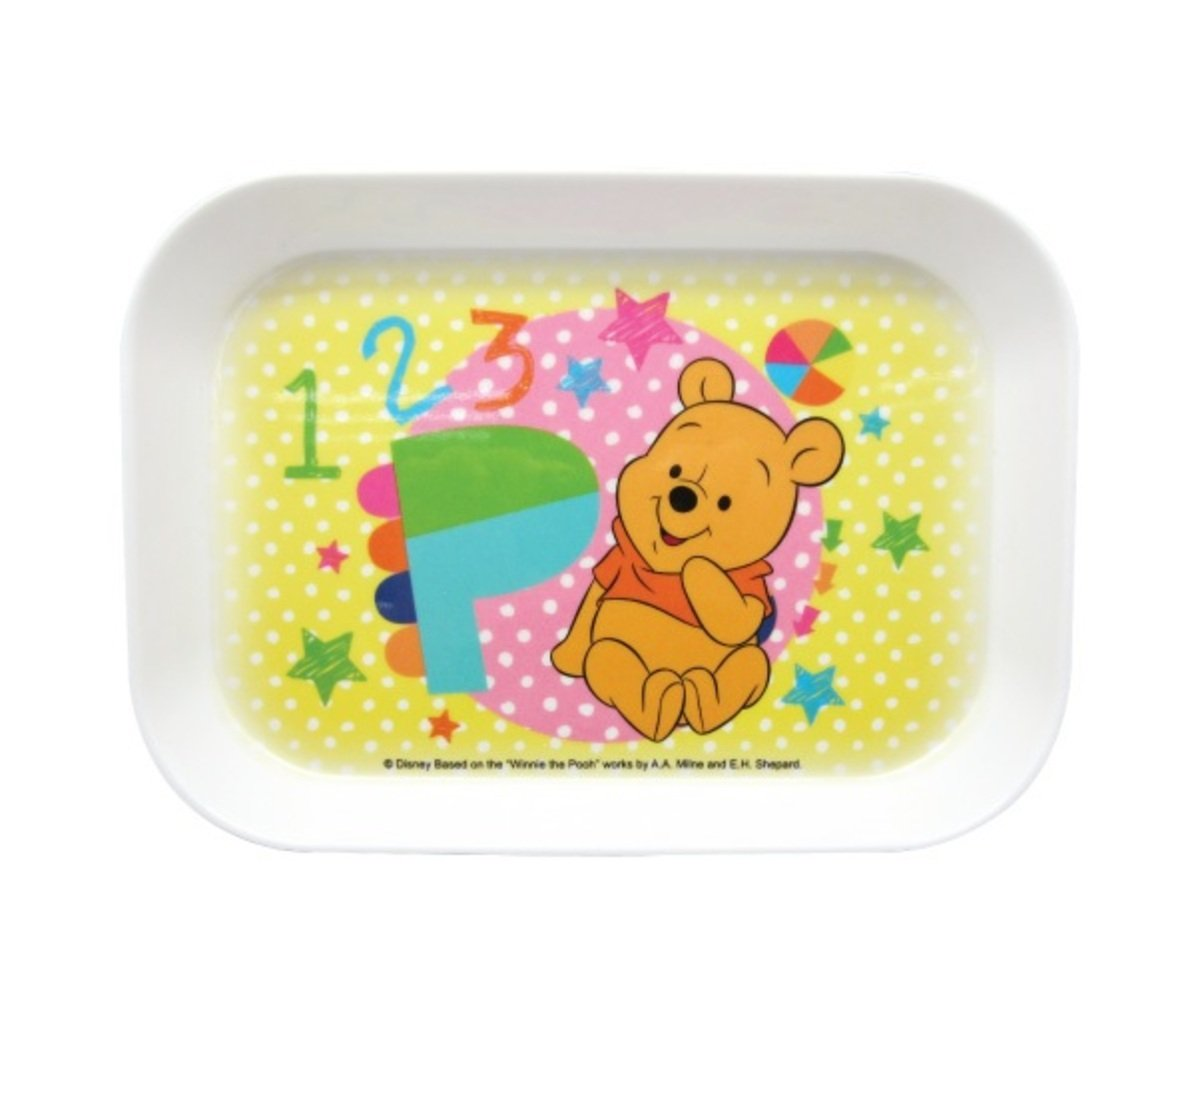 DISNEY-Melamine Tray (S) (Licensed by Disney)(WM3039)